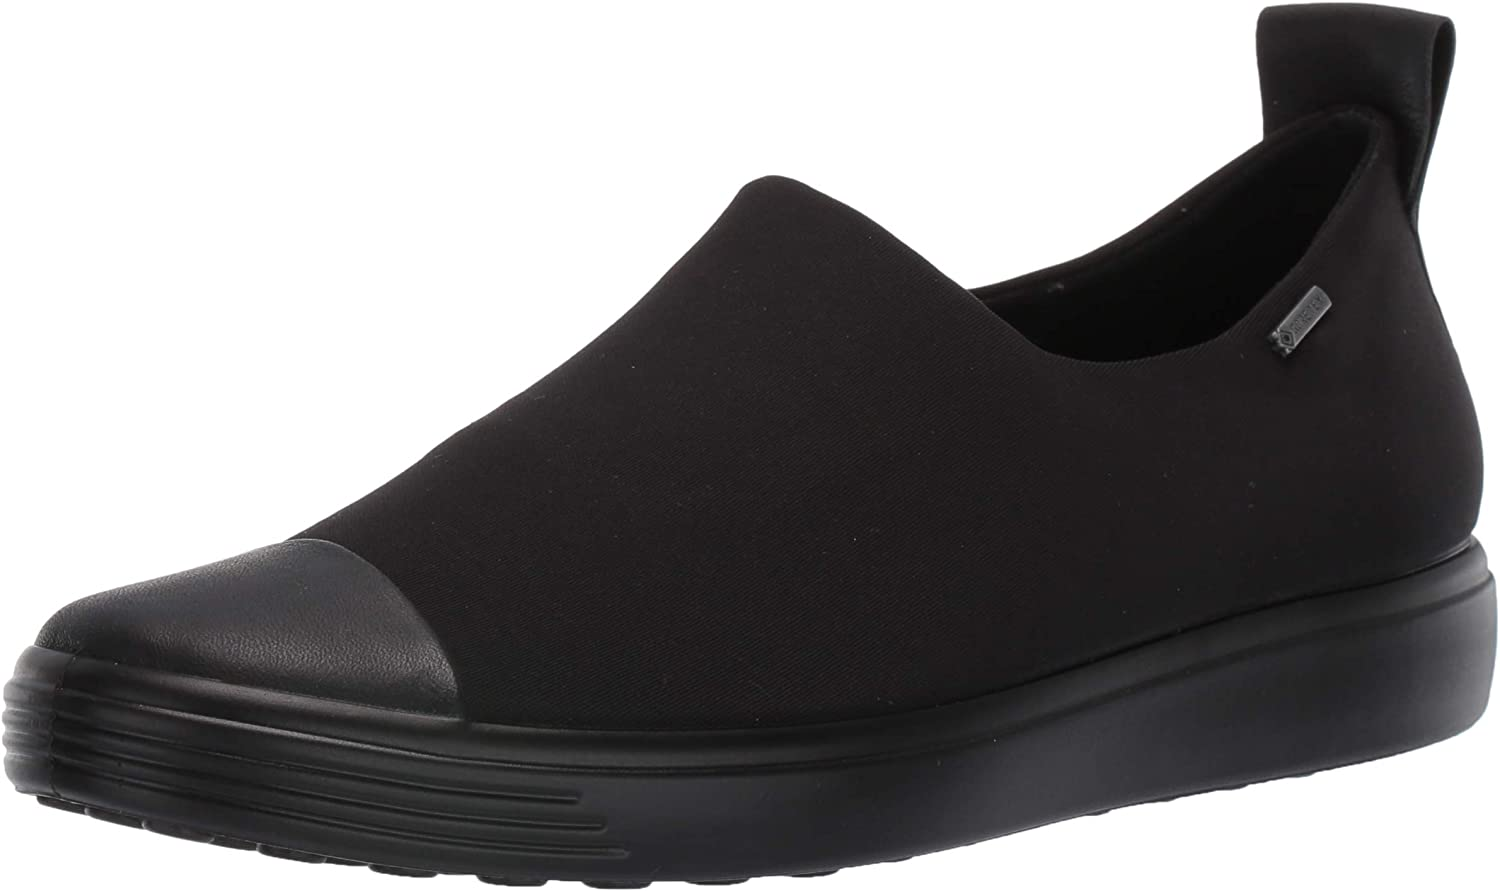 Soft 7 Gore-TEX Slip On Sneaker Shoes